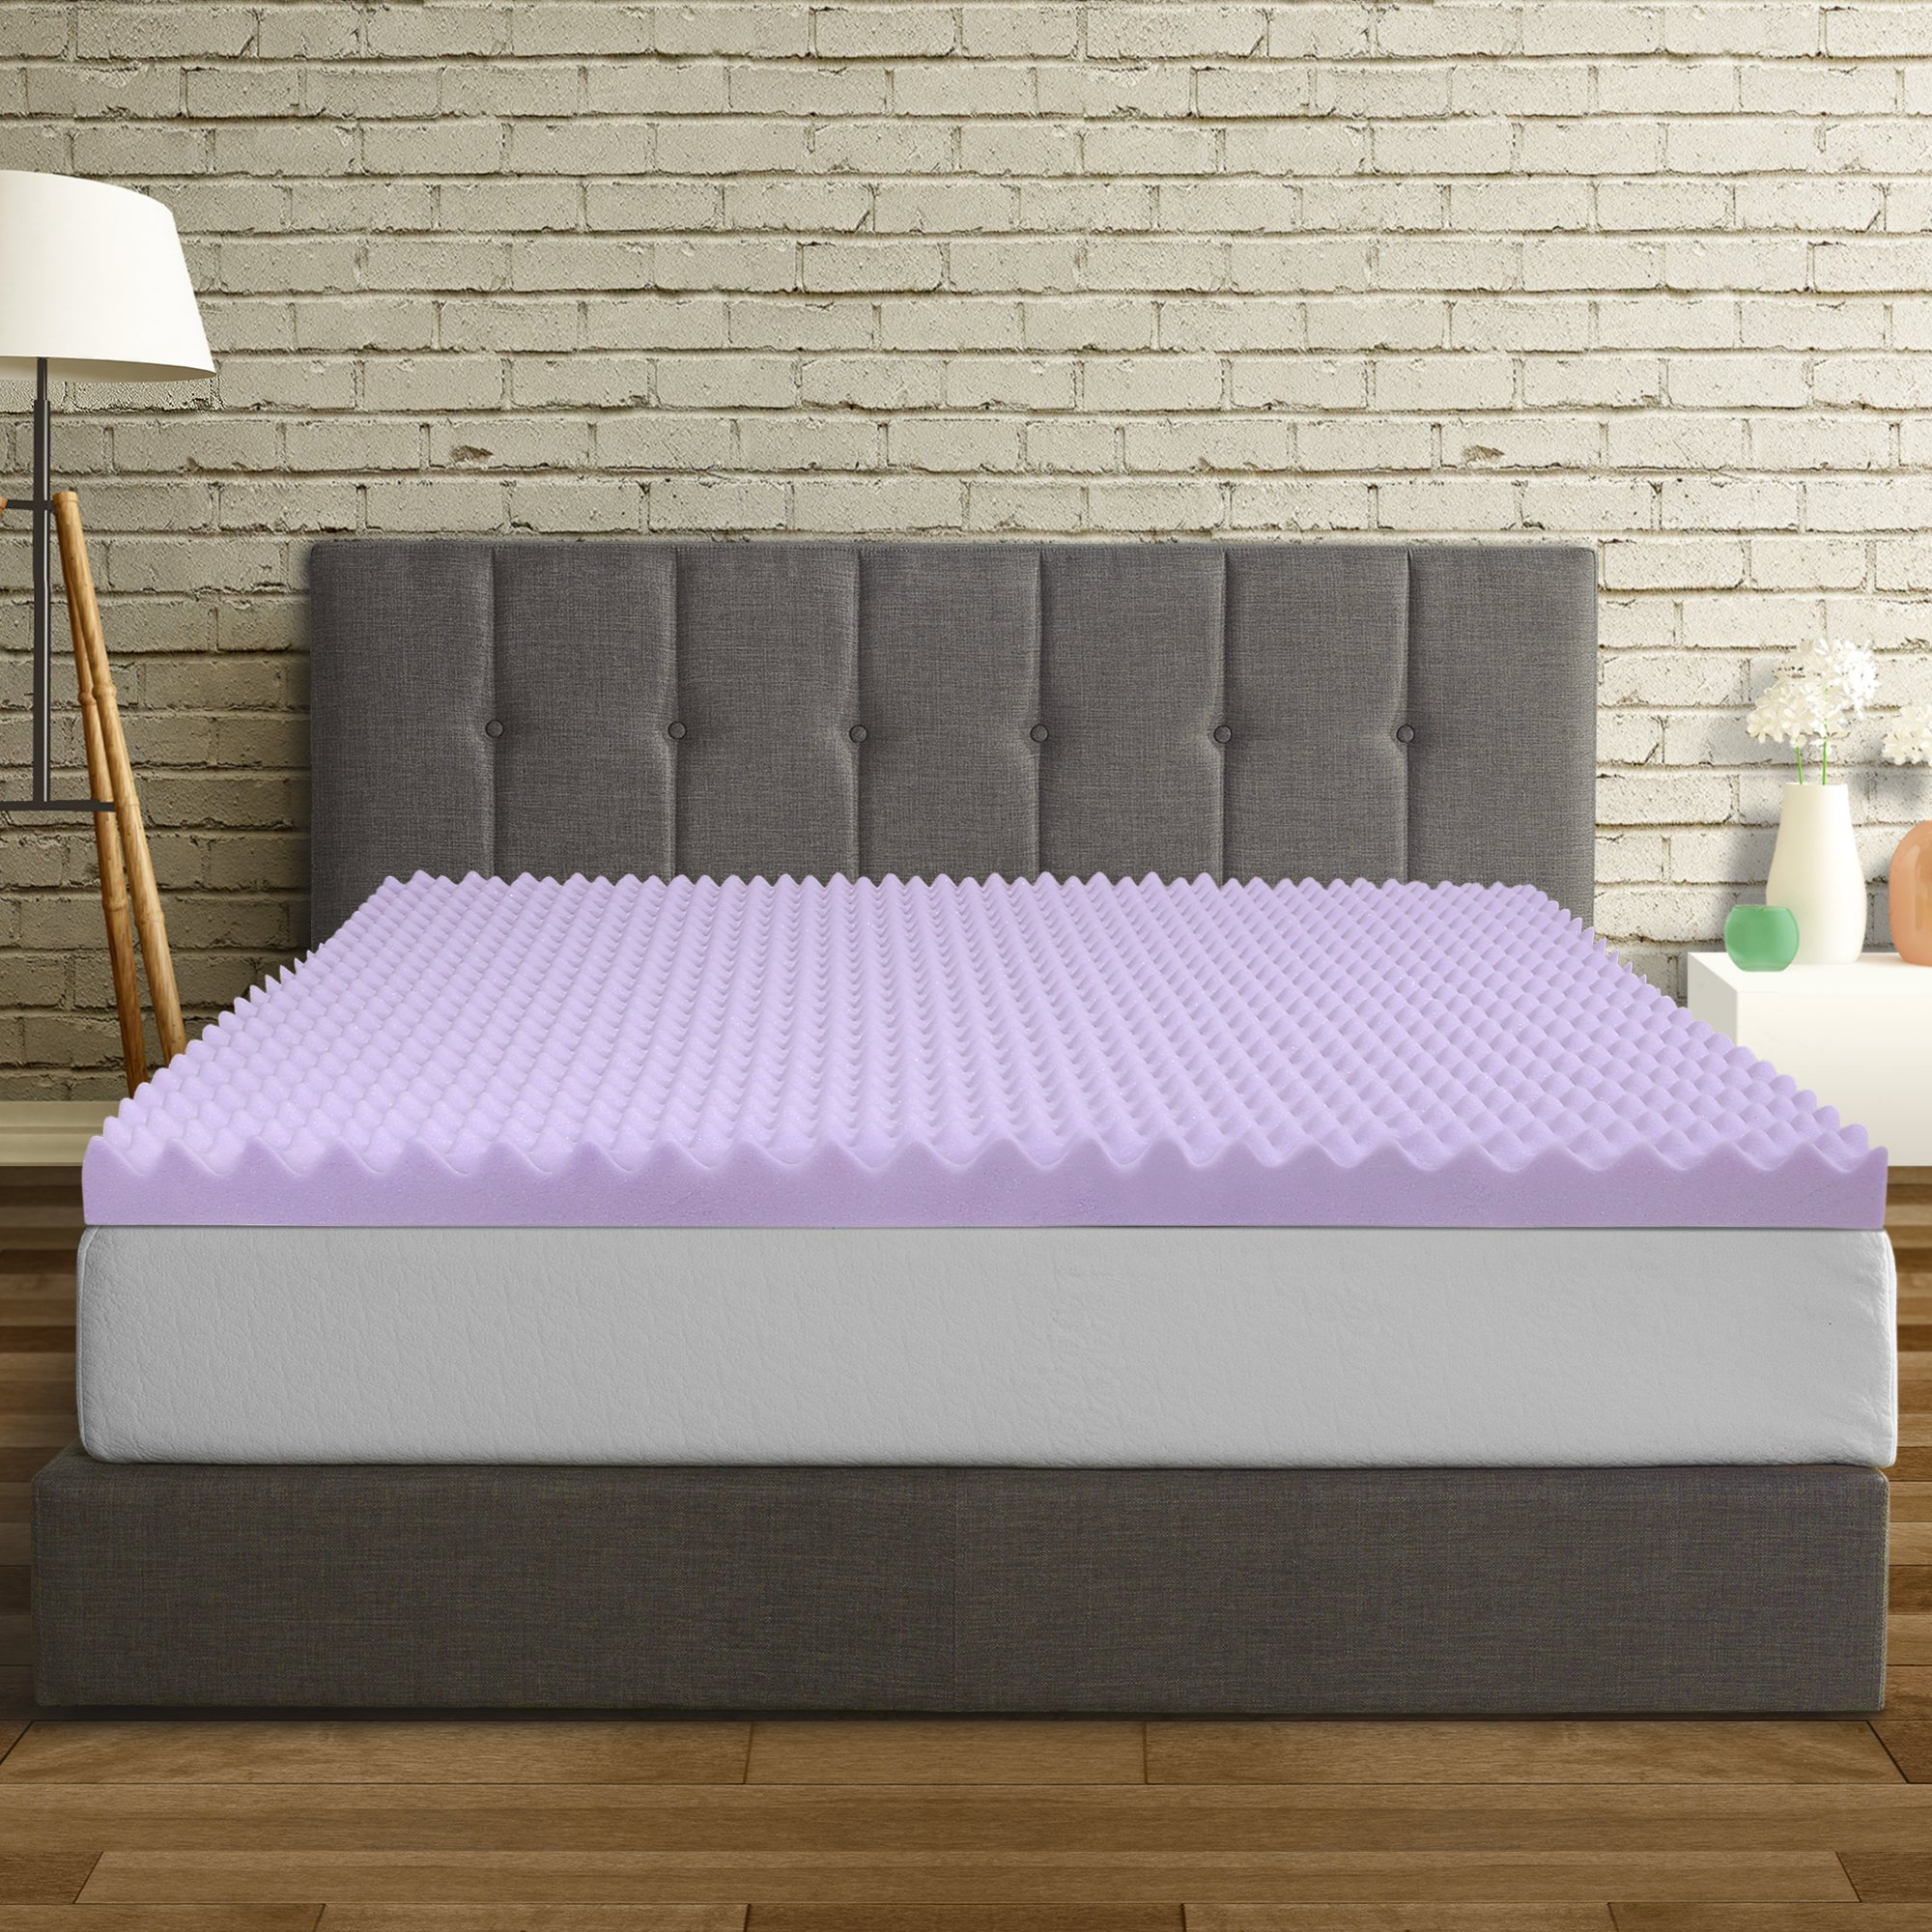 Best Price Mattress Full Mattress Topper - 3 Inch Egg Crate Memory Foam Bed Topper with Lavender Cooling Mattress Pad, Full Size